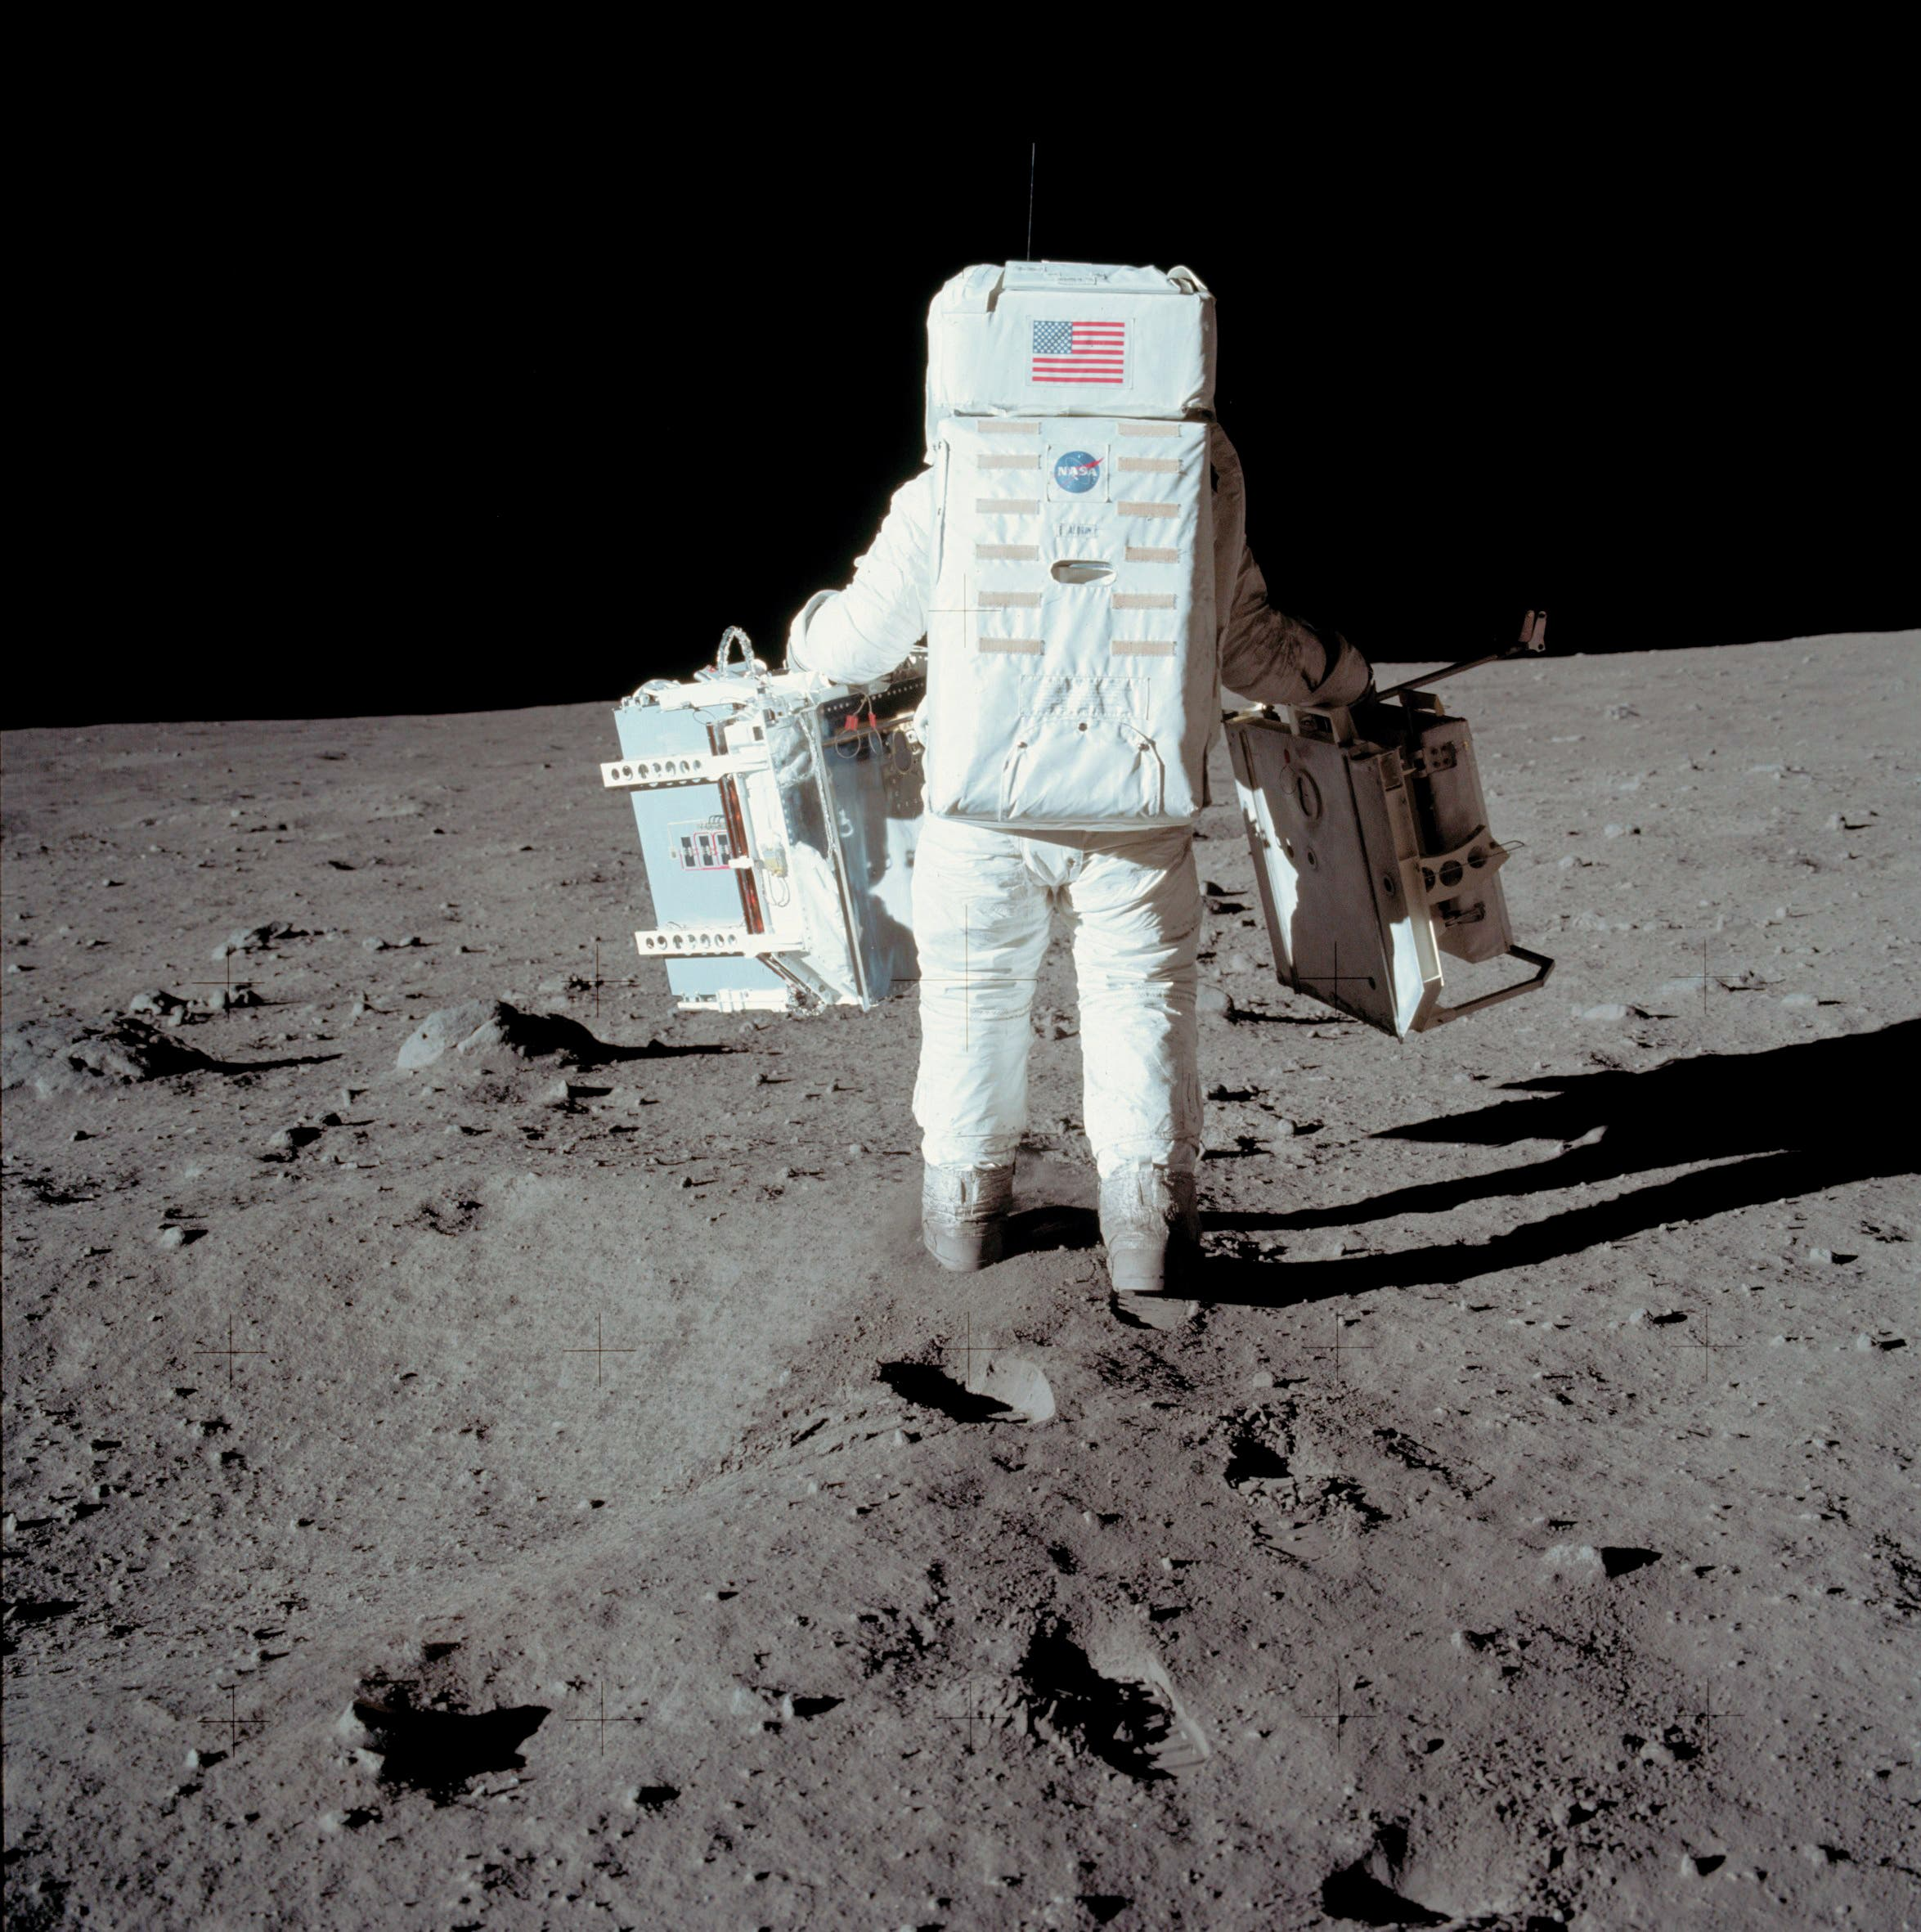 In this image from NASA on July 20 1969, Apollo 11 space mission US astronaut Buzz Aldrin conducts experiment on the moon's surface on a picture taken by Neil Armstrong, after both climbed down the ladder of the lunar module. (AFP)